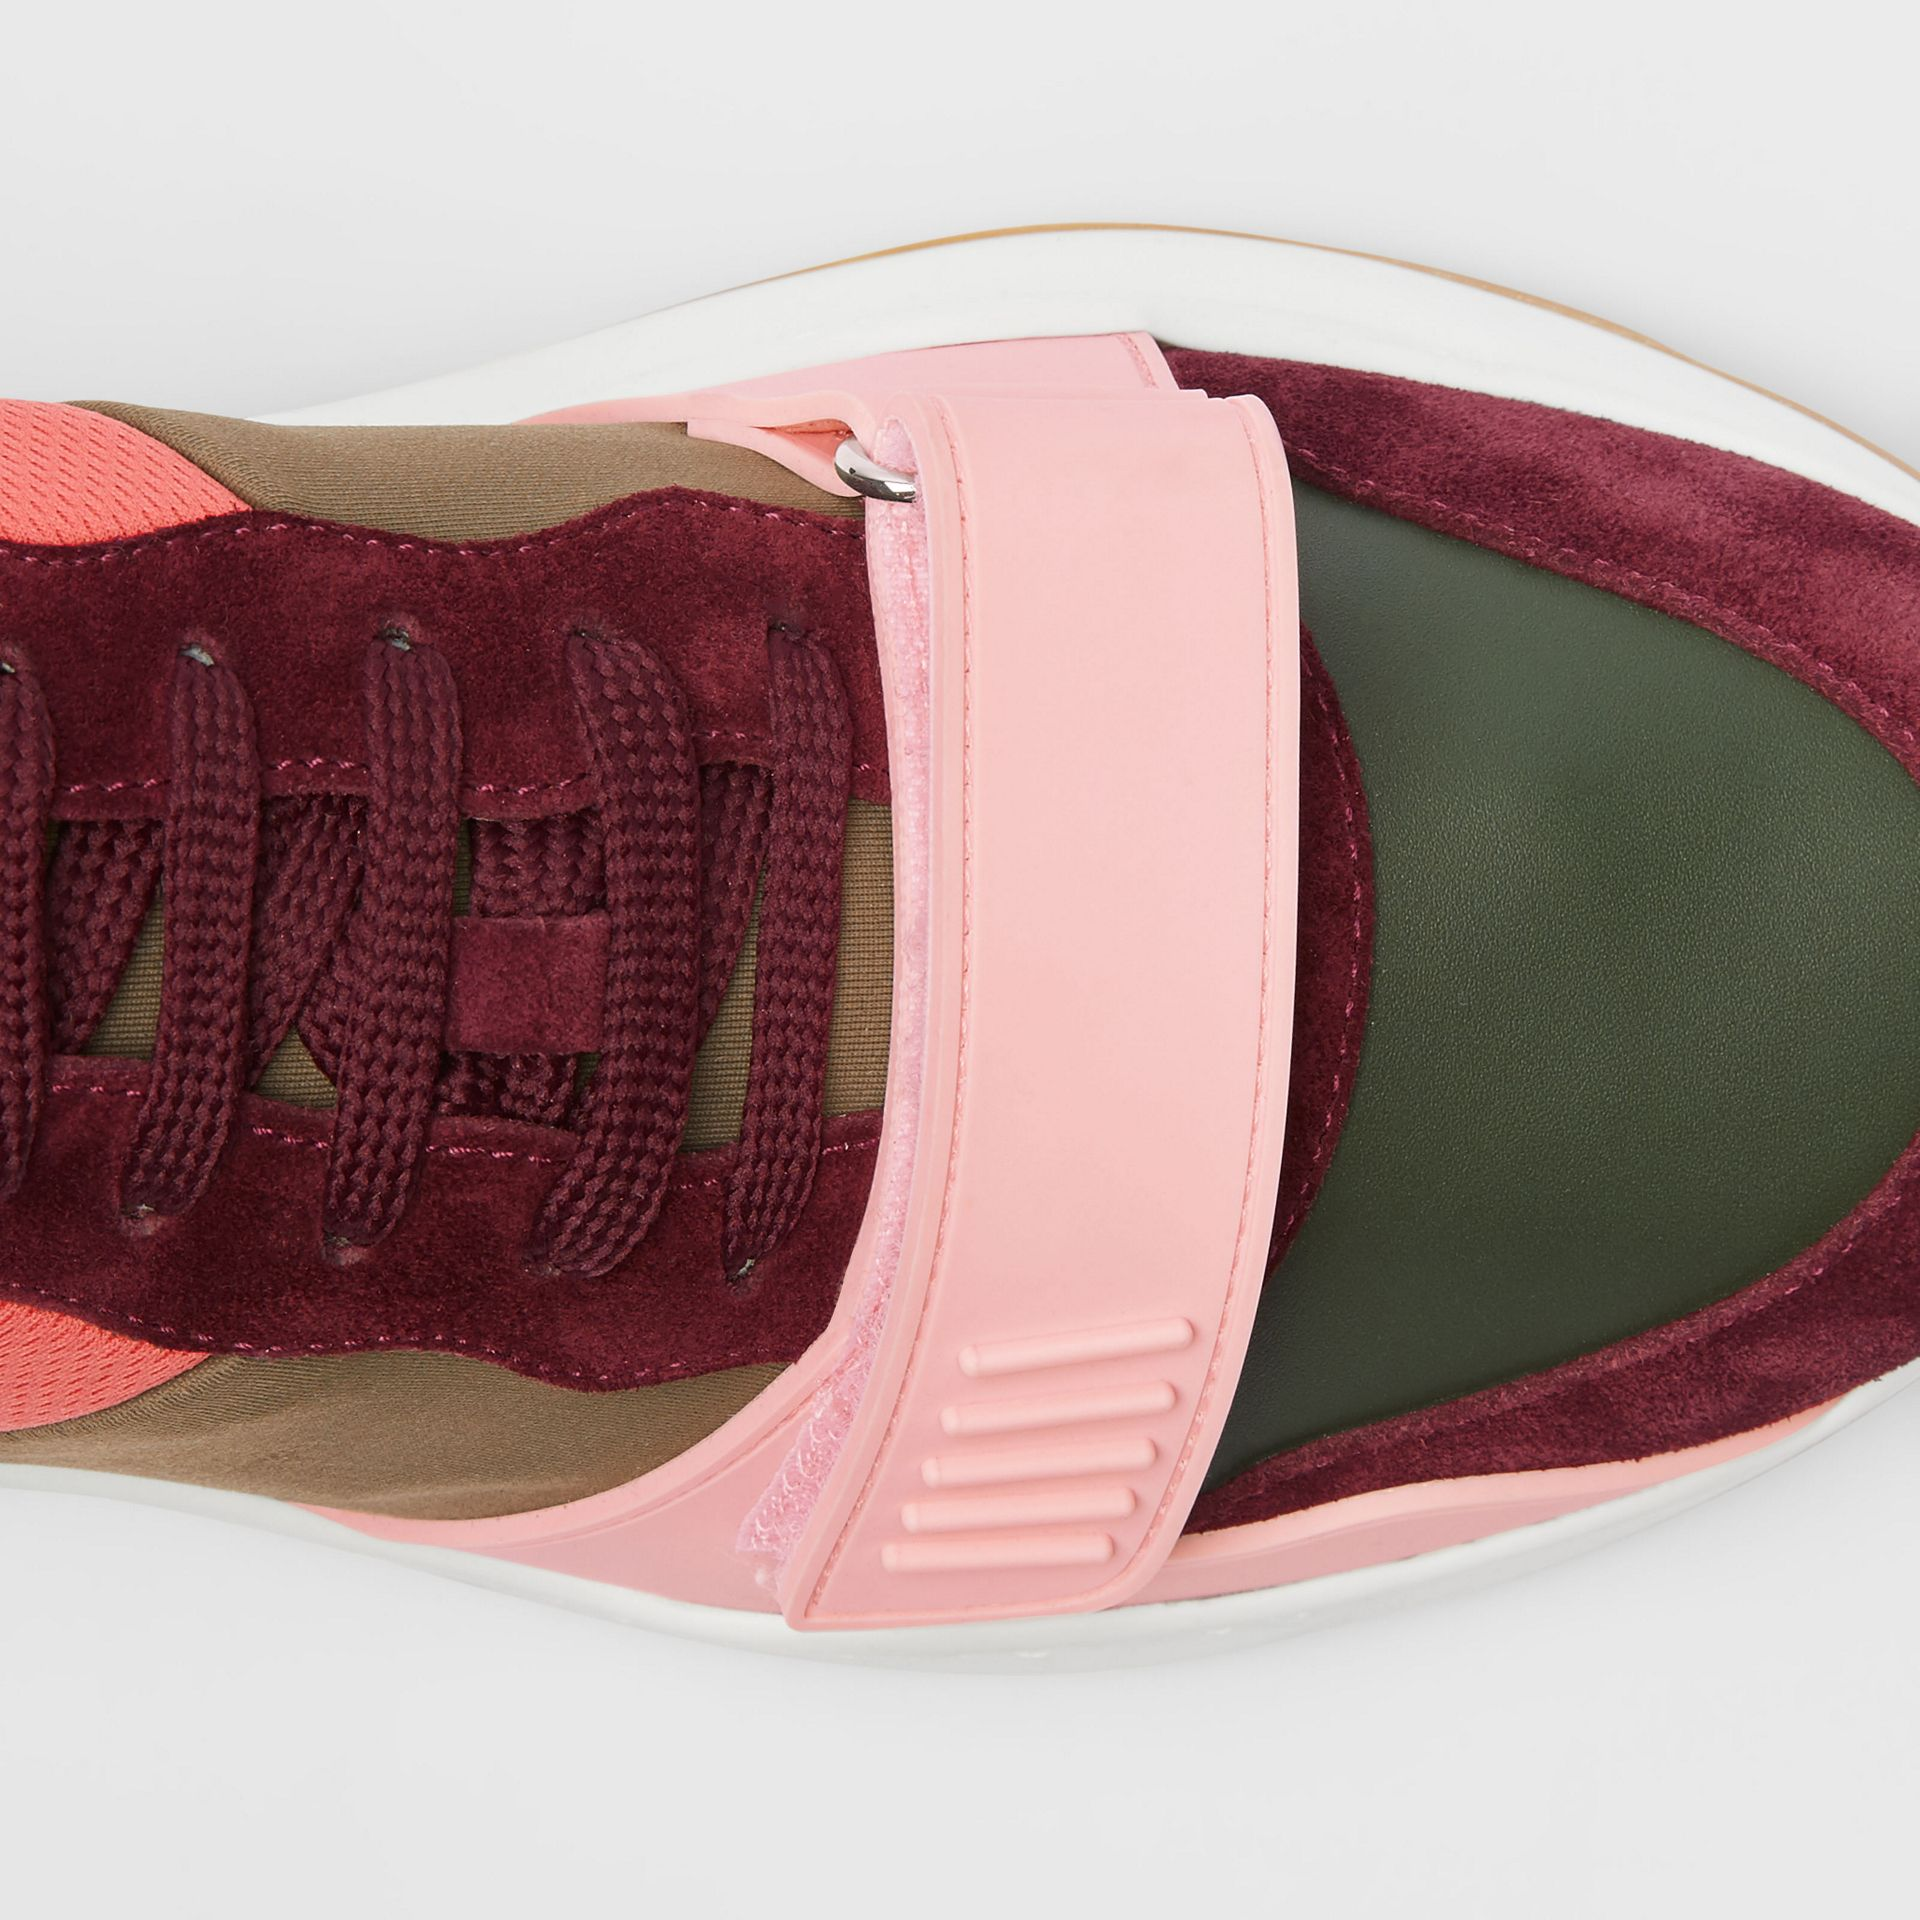 Colour Block Suede and Neoprene Sneakers in Bordeaux/khaki - Men | Burberry Canada - gallery image 1